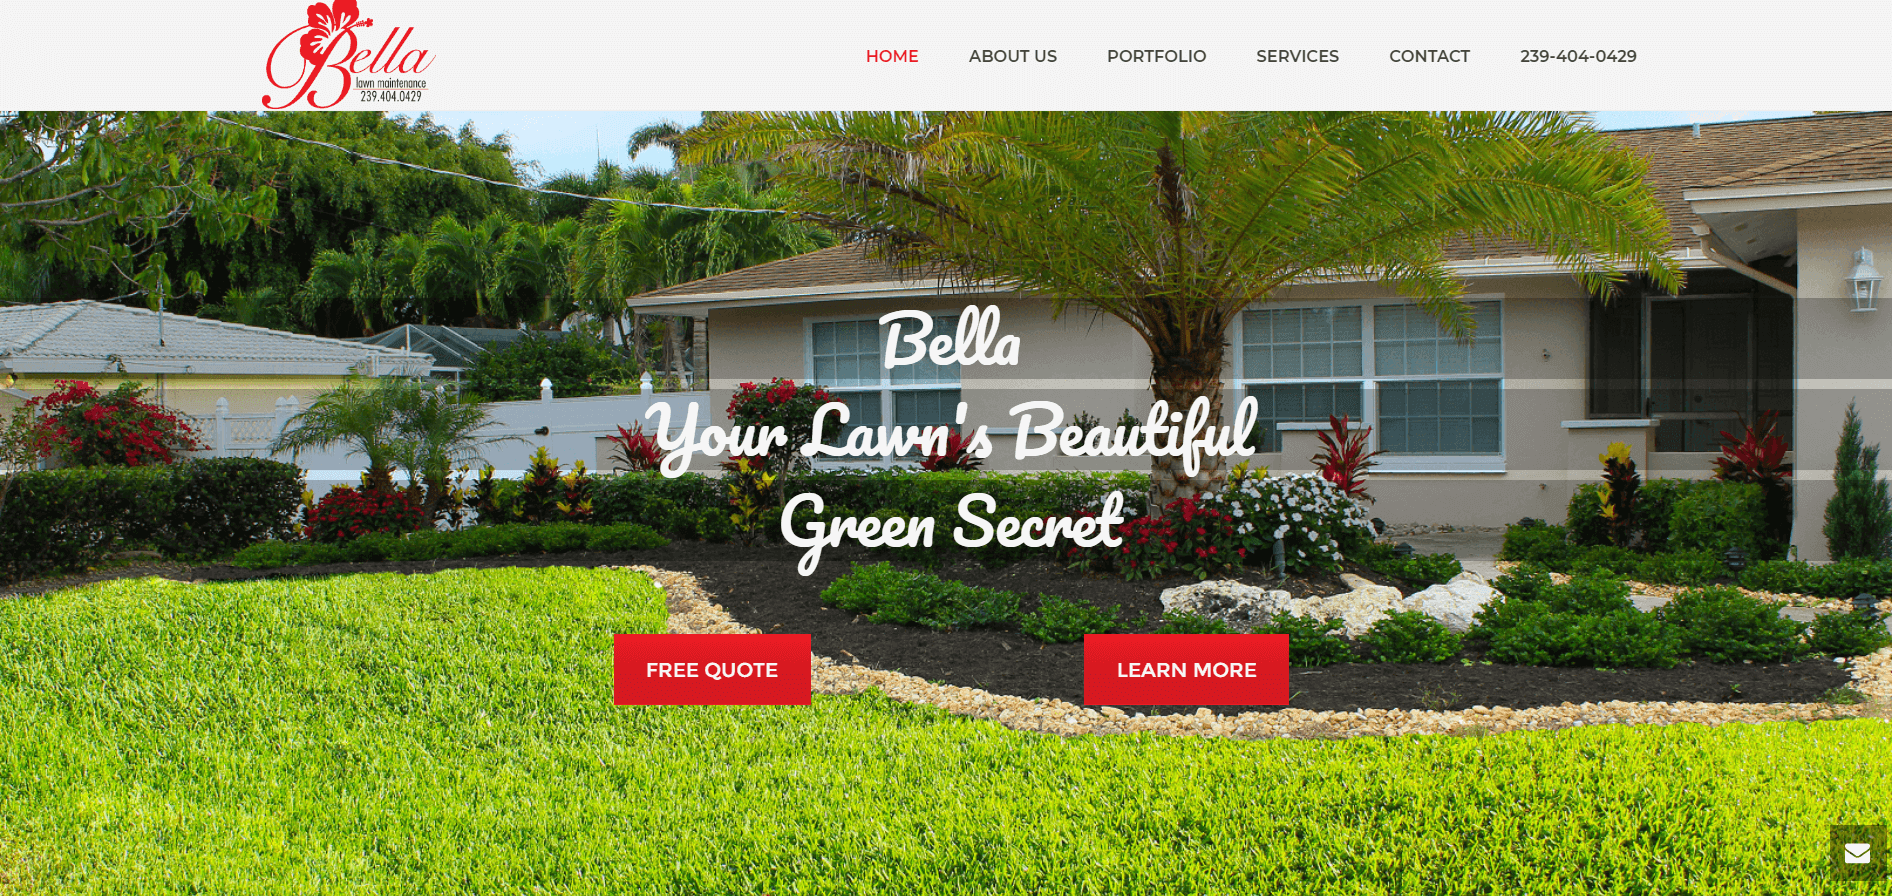 bella lawn mainetence splash page